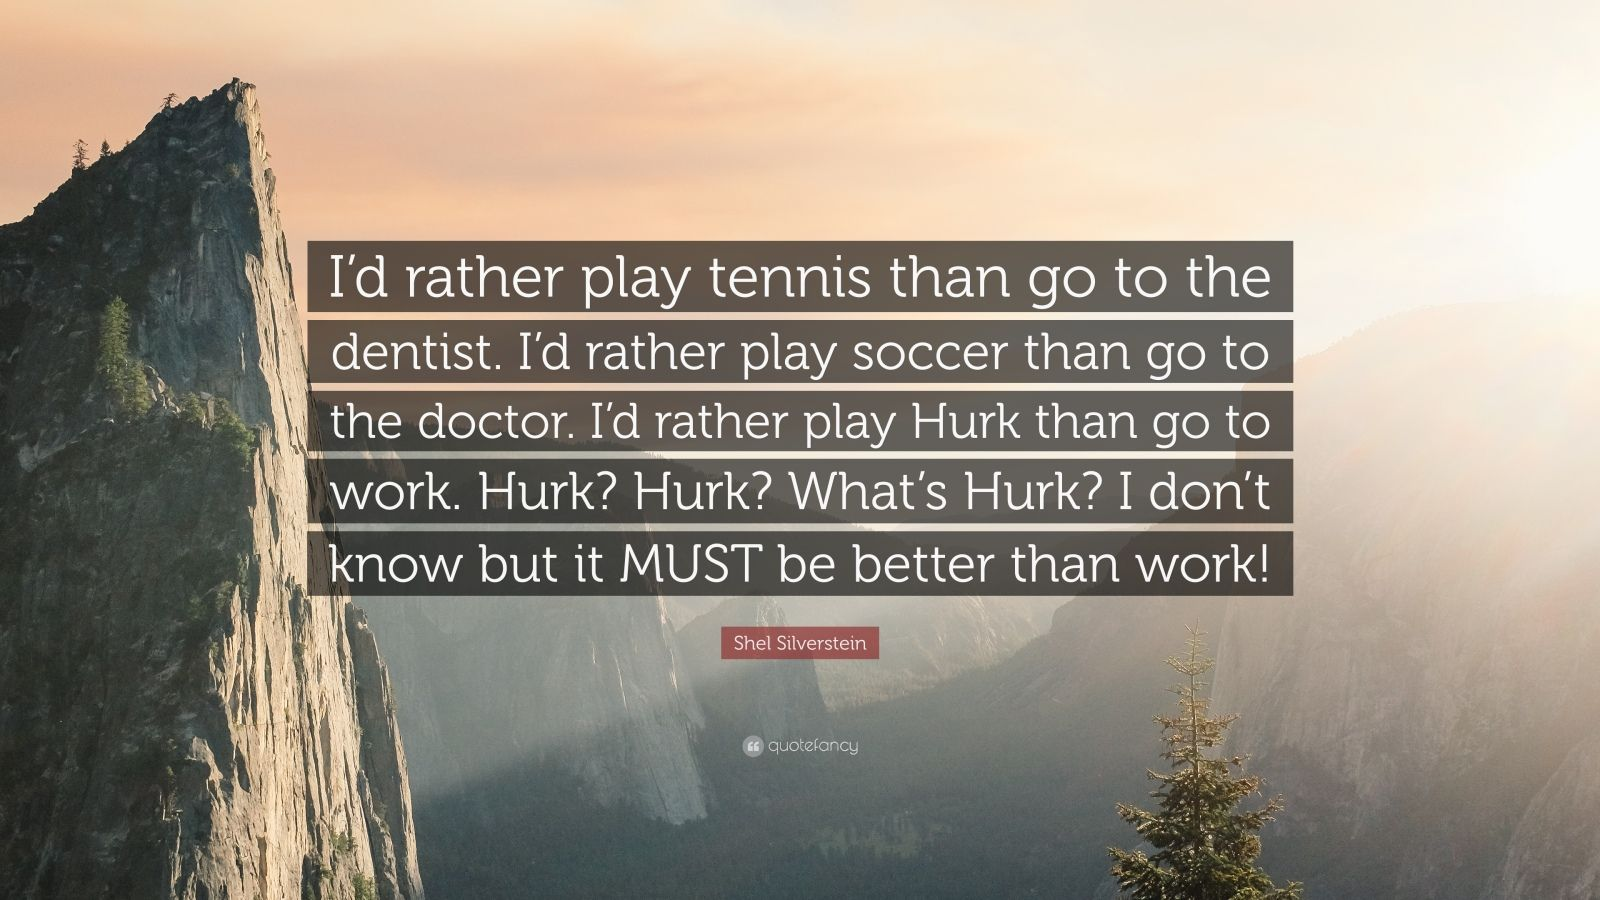 "Shel Silverstein Quote: ""I'd rather play tennis than go to the dentist. I'd rather play soccer than go to the doctor. I'd rather play Hurk than go to work. Hurk? Hurk? What's Hurk? I don't know but it MUST be better than work!"""